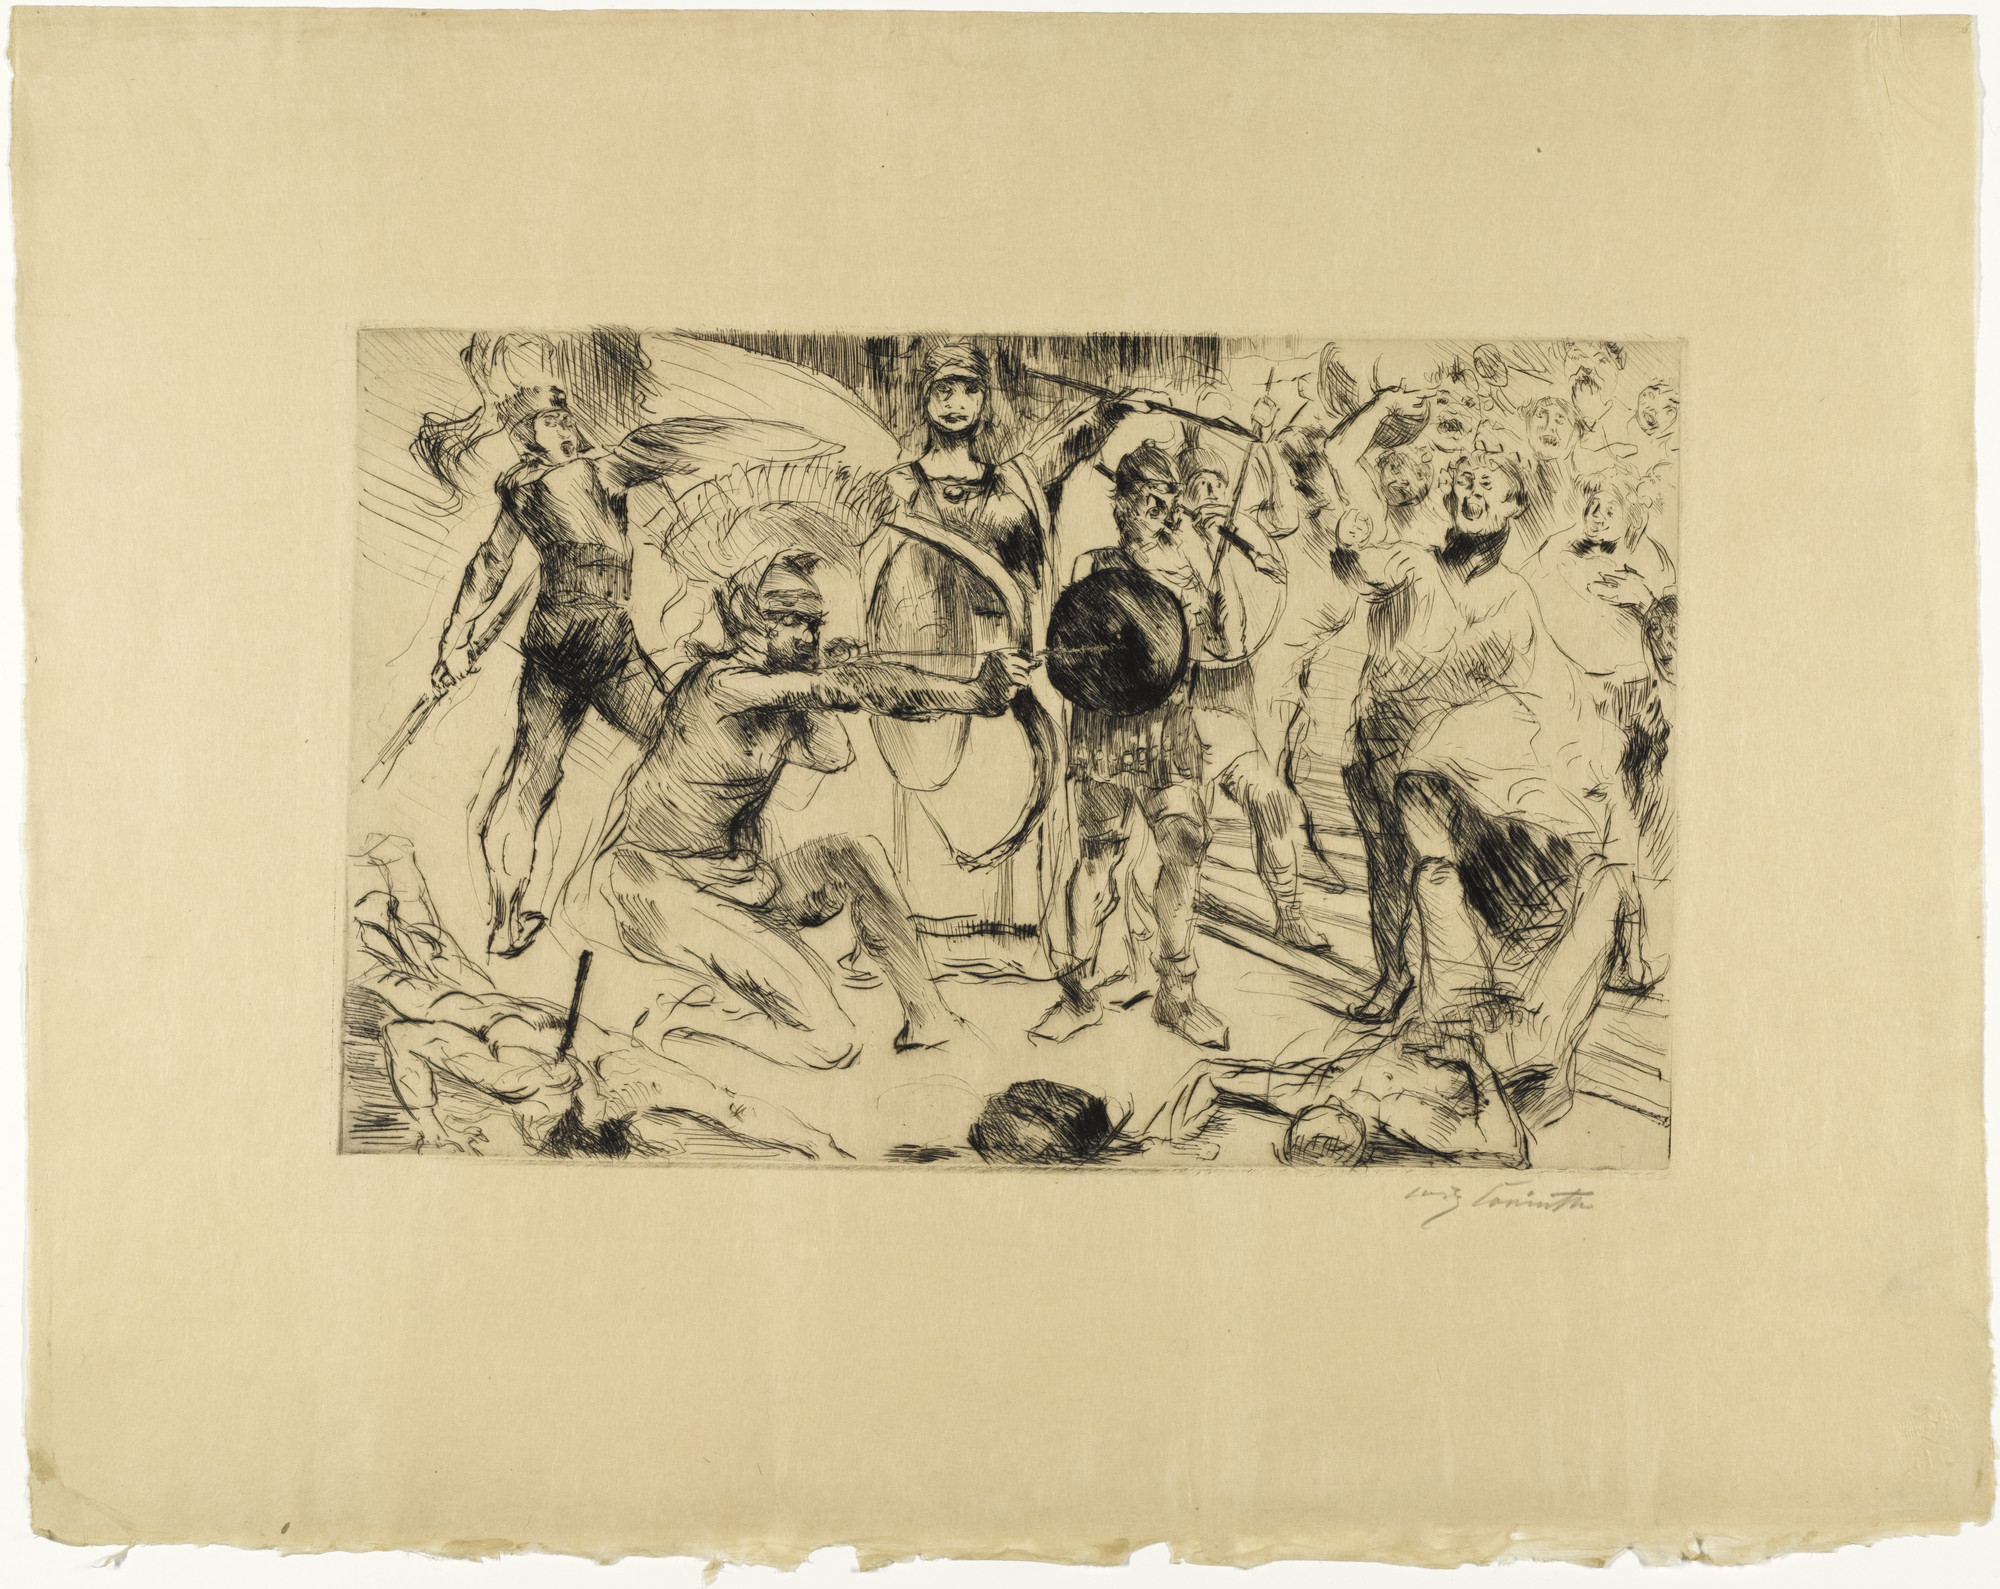 Lovis Corinth. Odysseus and the Suitors (Odysseus und die Freier) from Classical Legends (Antike Legenden). (1919)